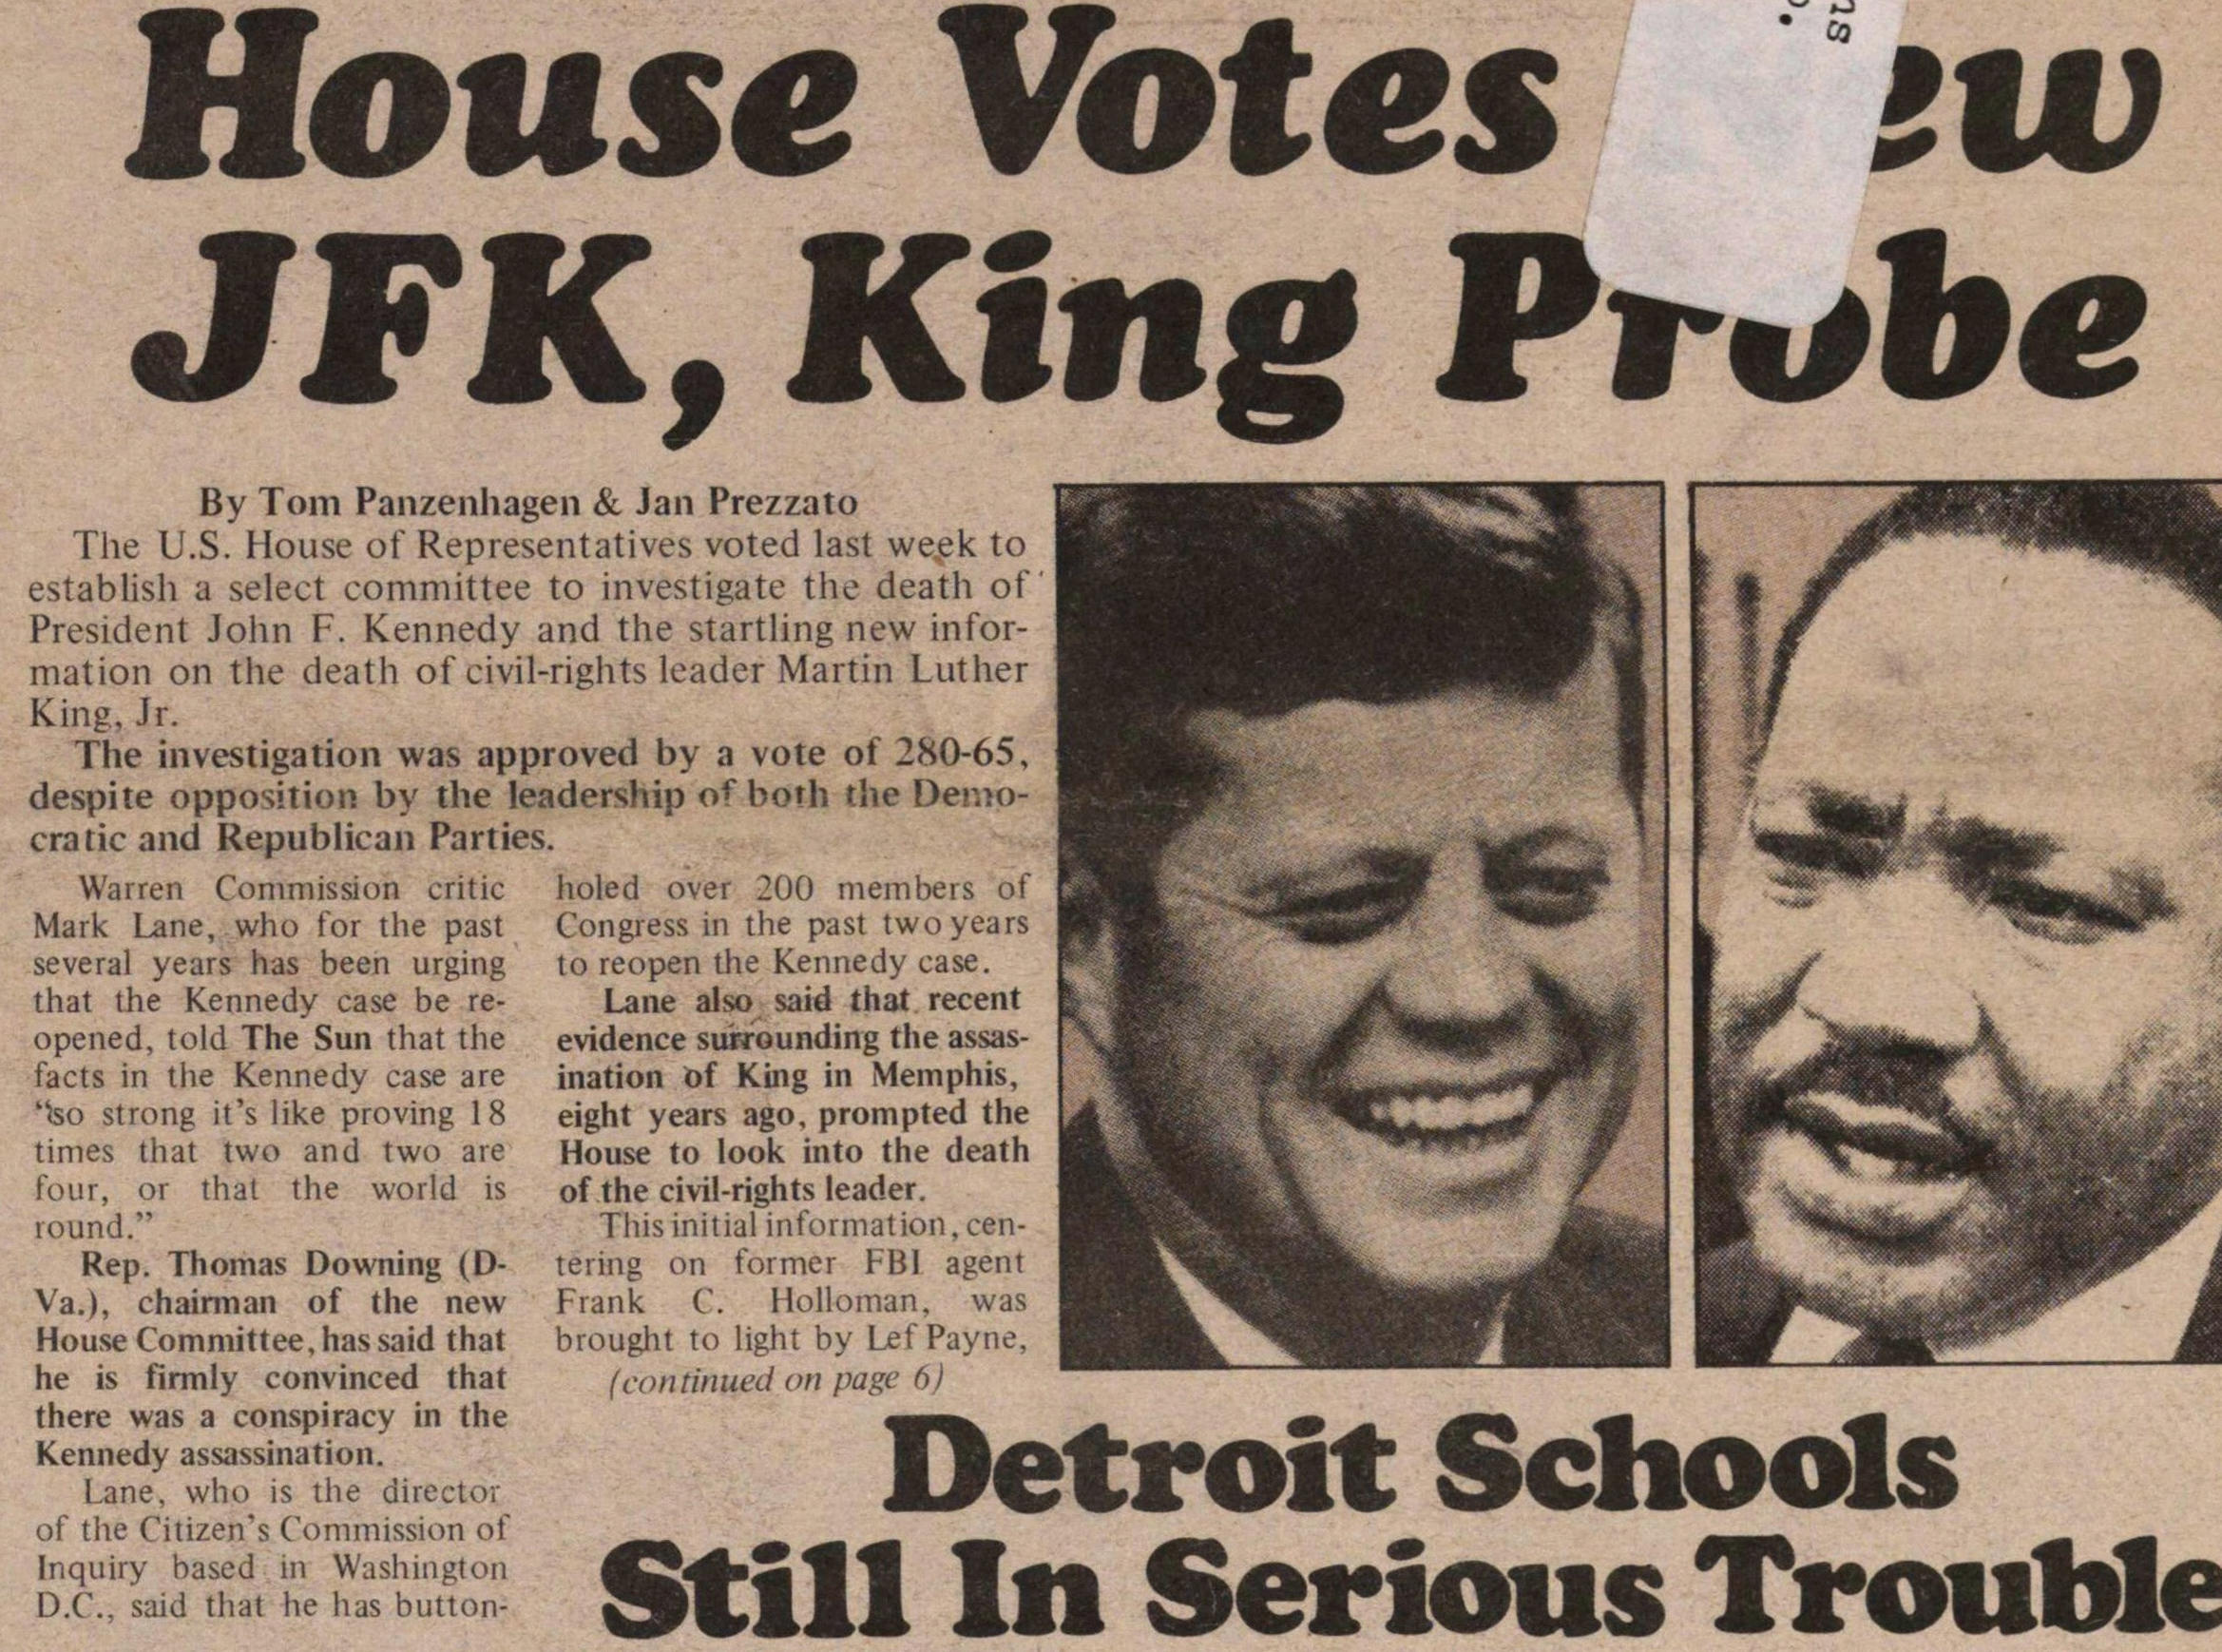 House Votes New Jfk, King Probe image